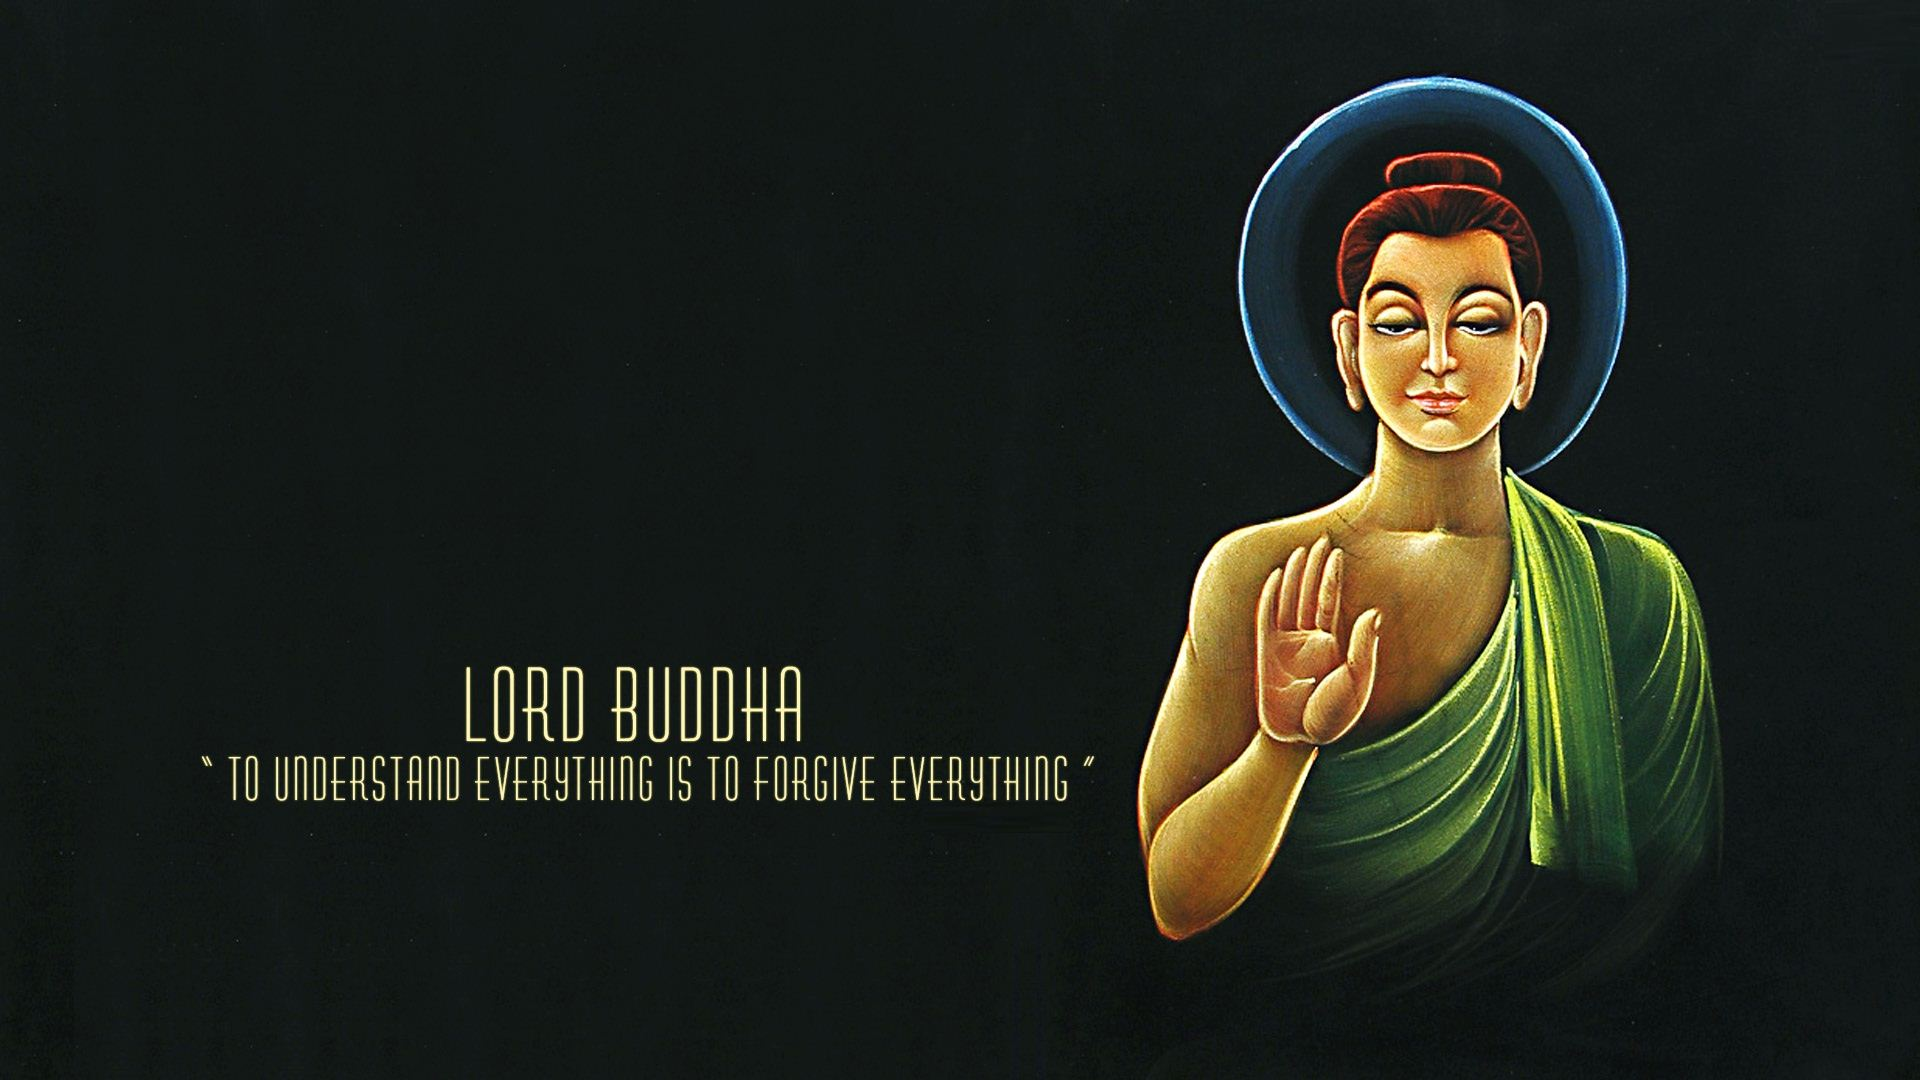 Lord Buddha Wallpaper Computer